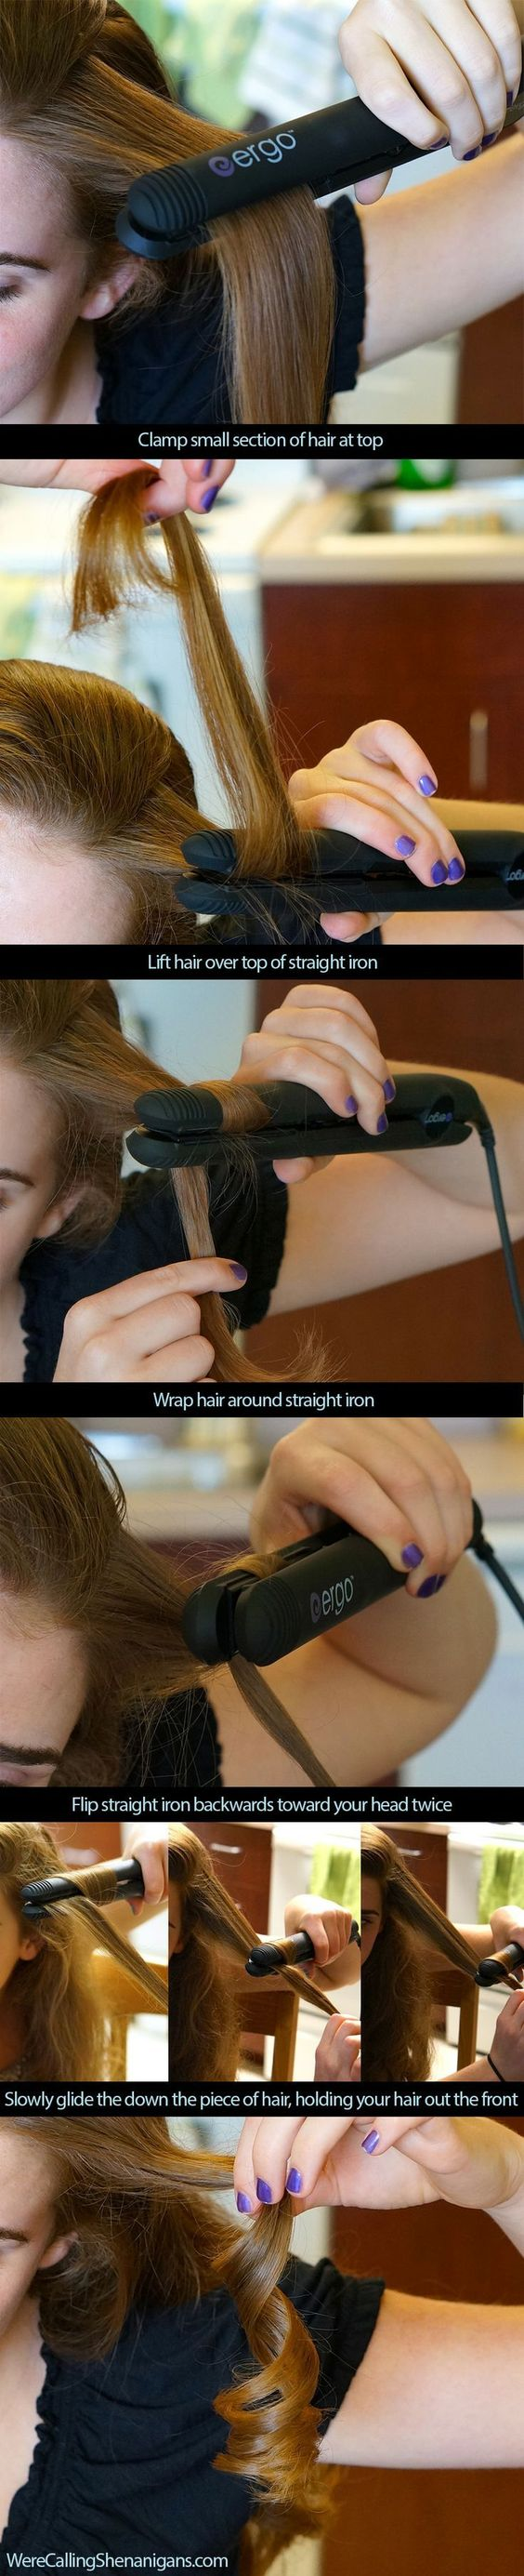 Style a Curly Hair with Your Flat Iron